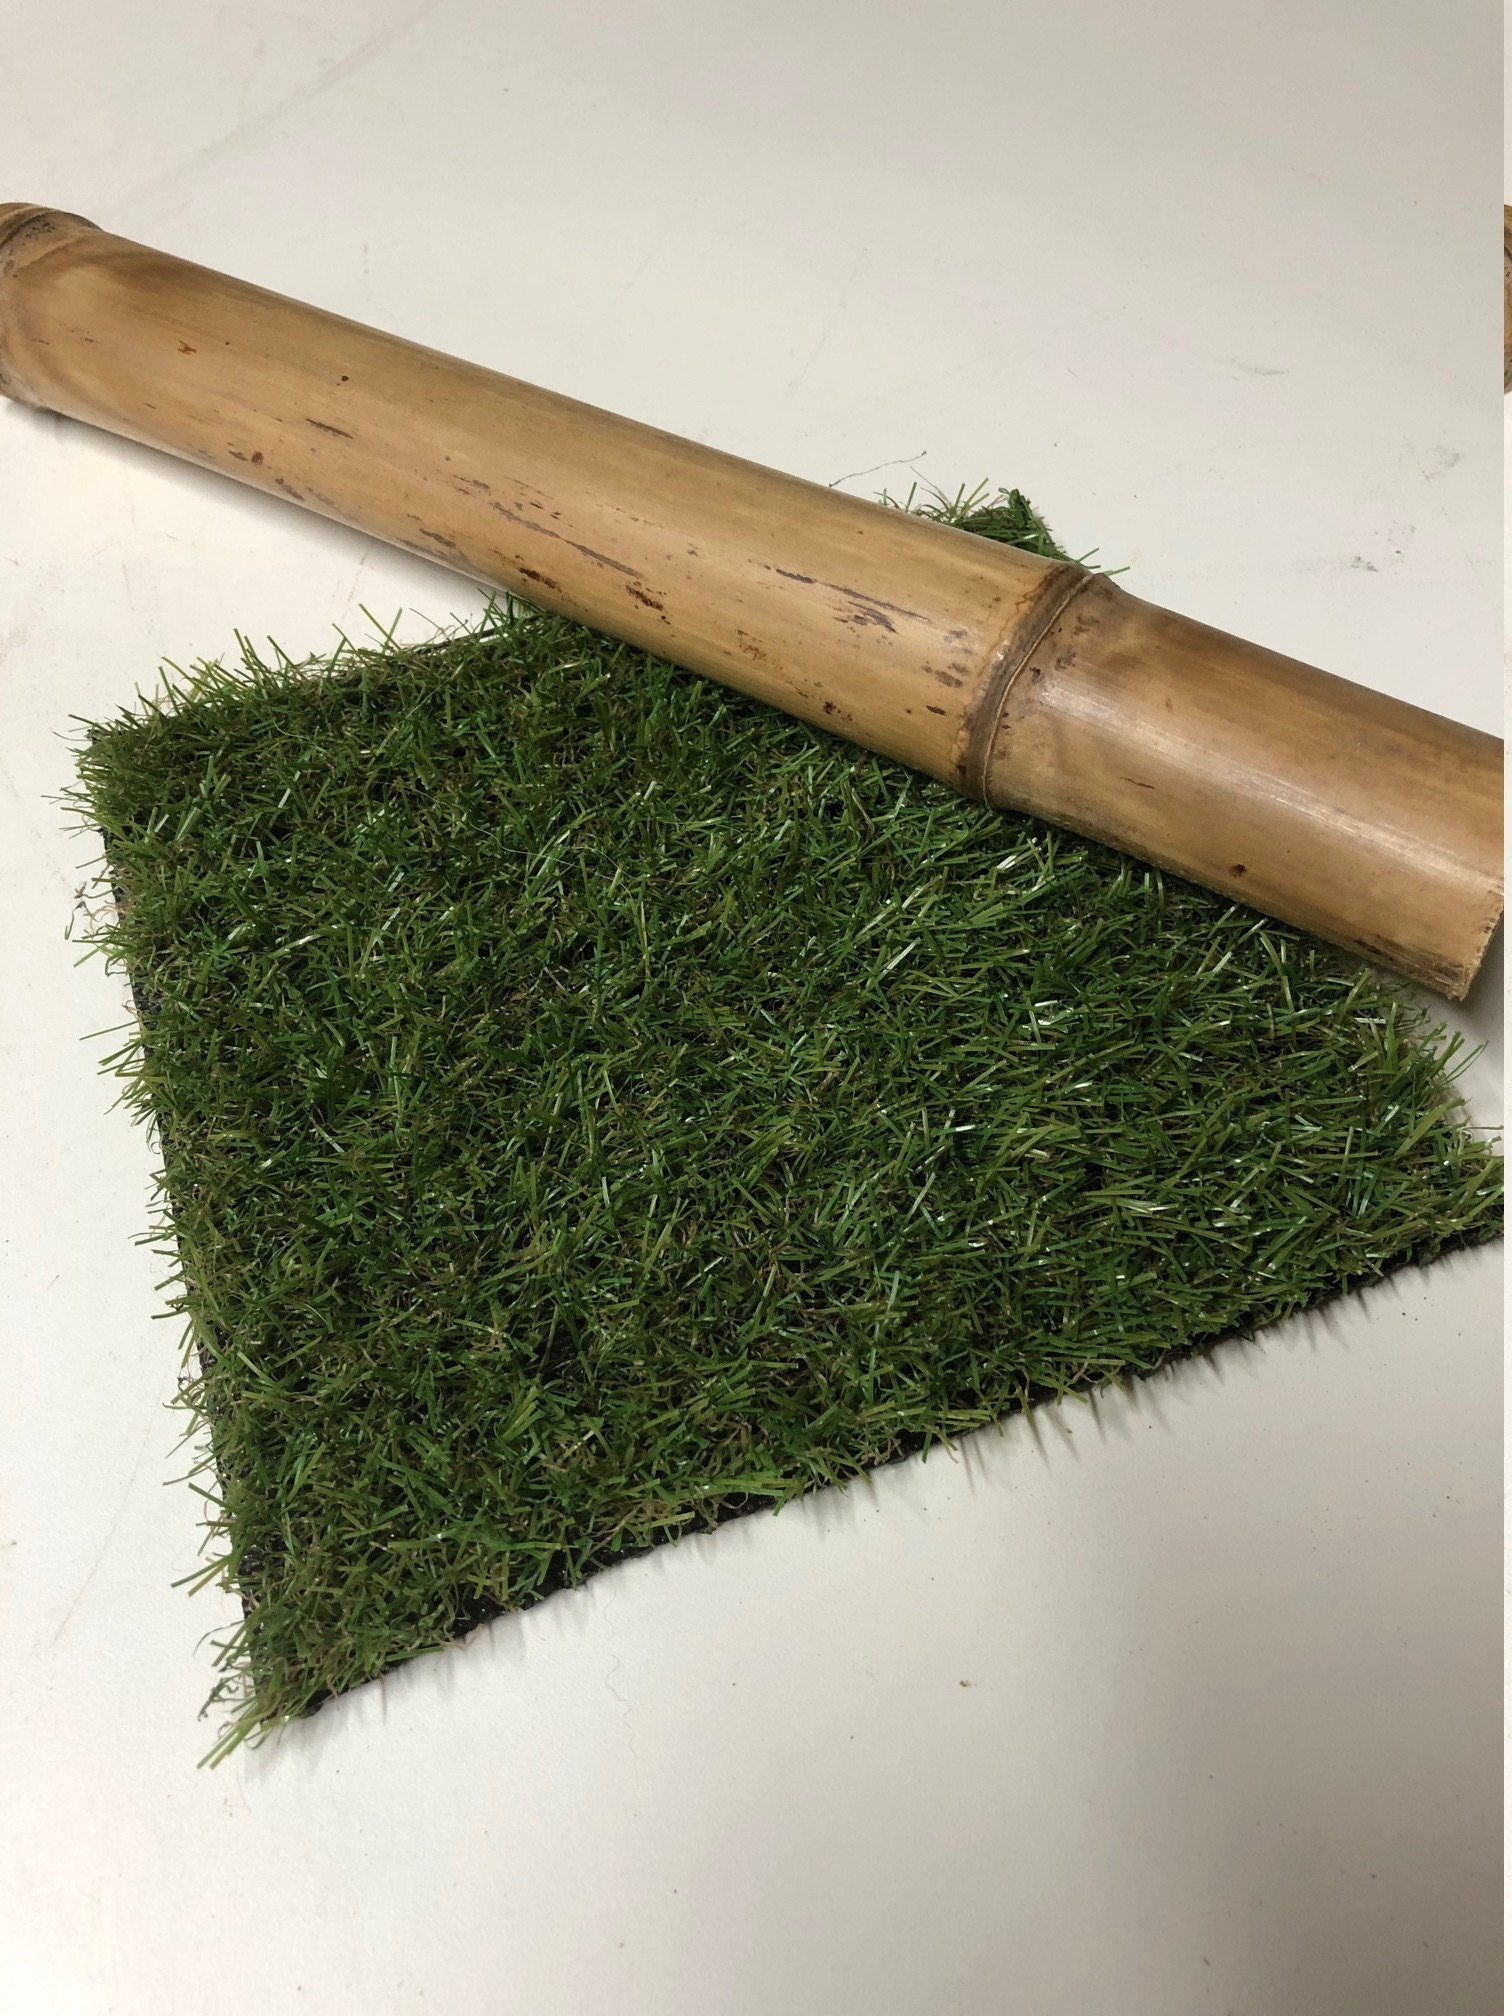 Artificial grass off-cut and a piece of bamboo